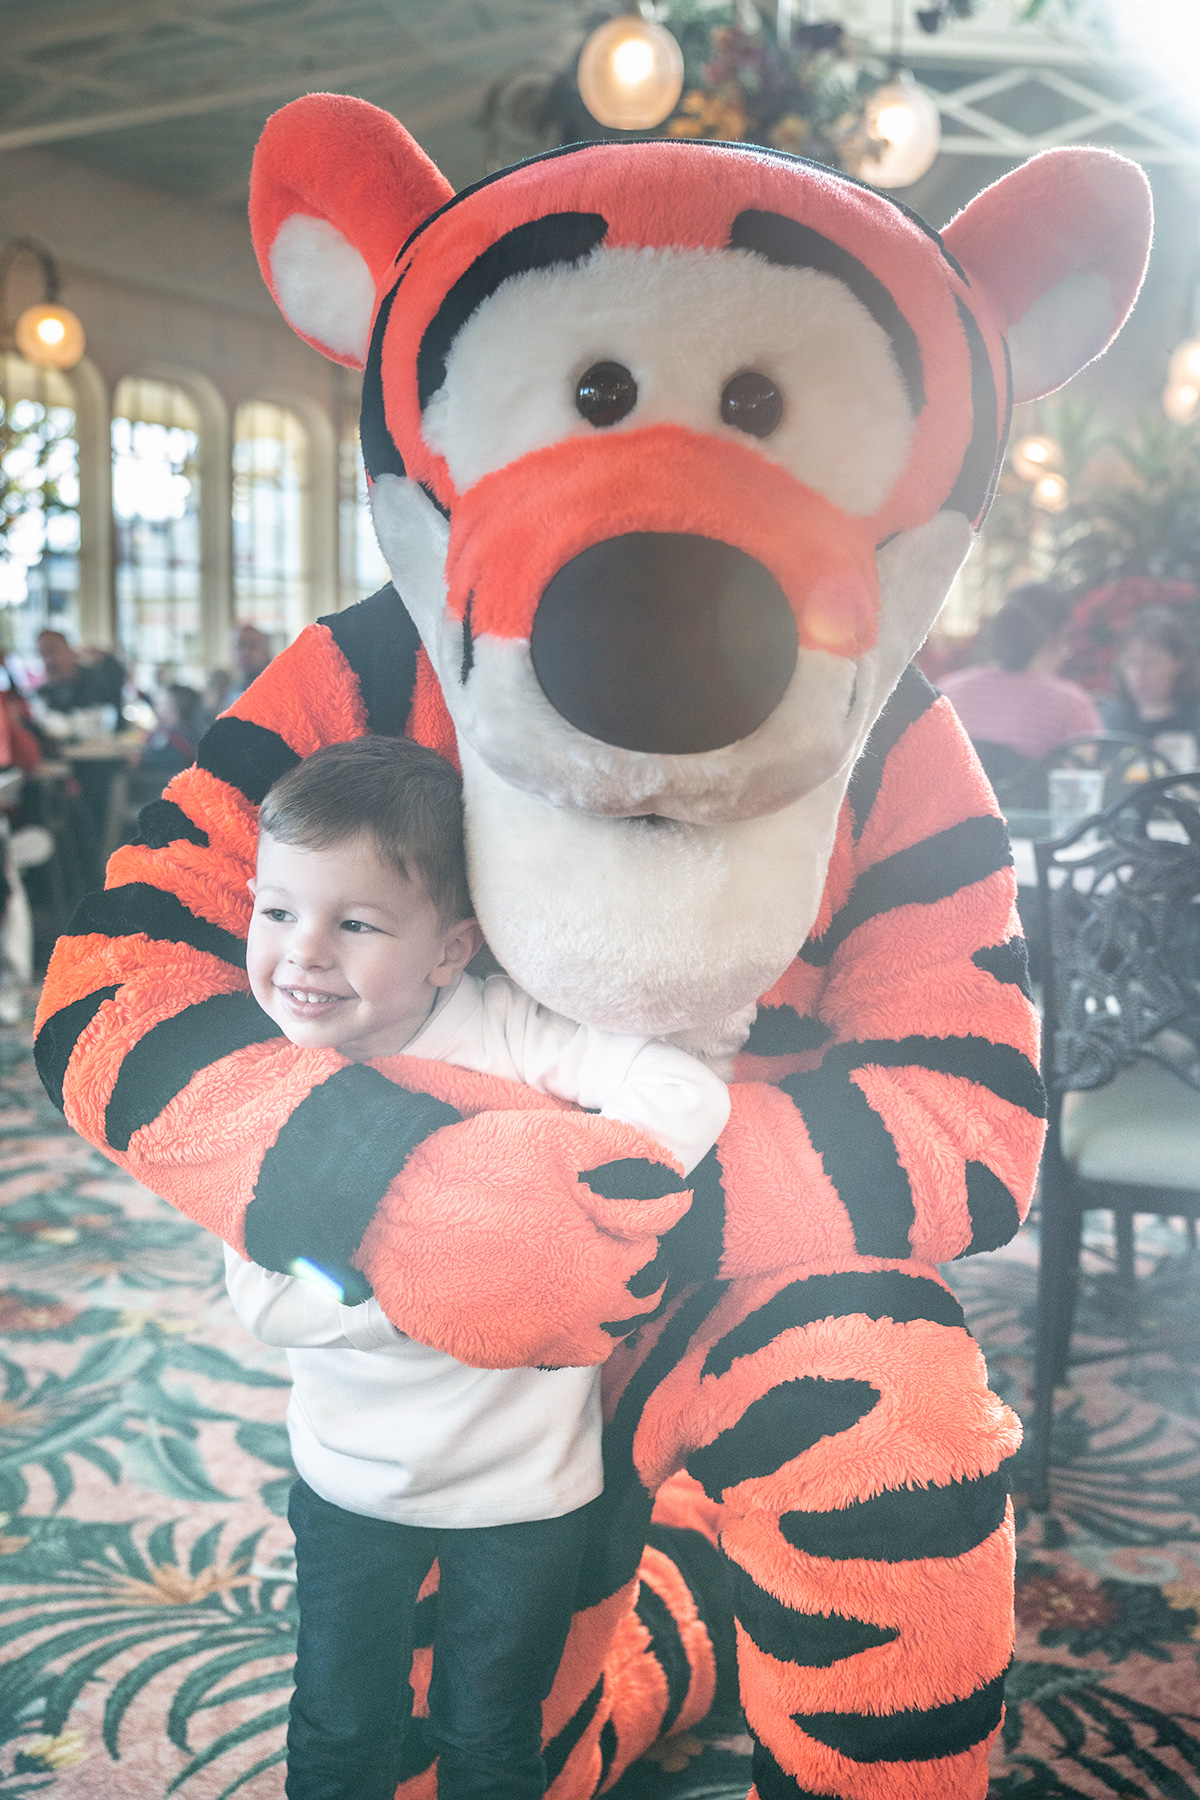 Meeting-Tigger-at-Winnie-The-Pooh-Character-Breakfast